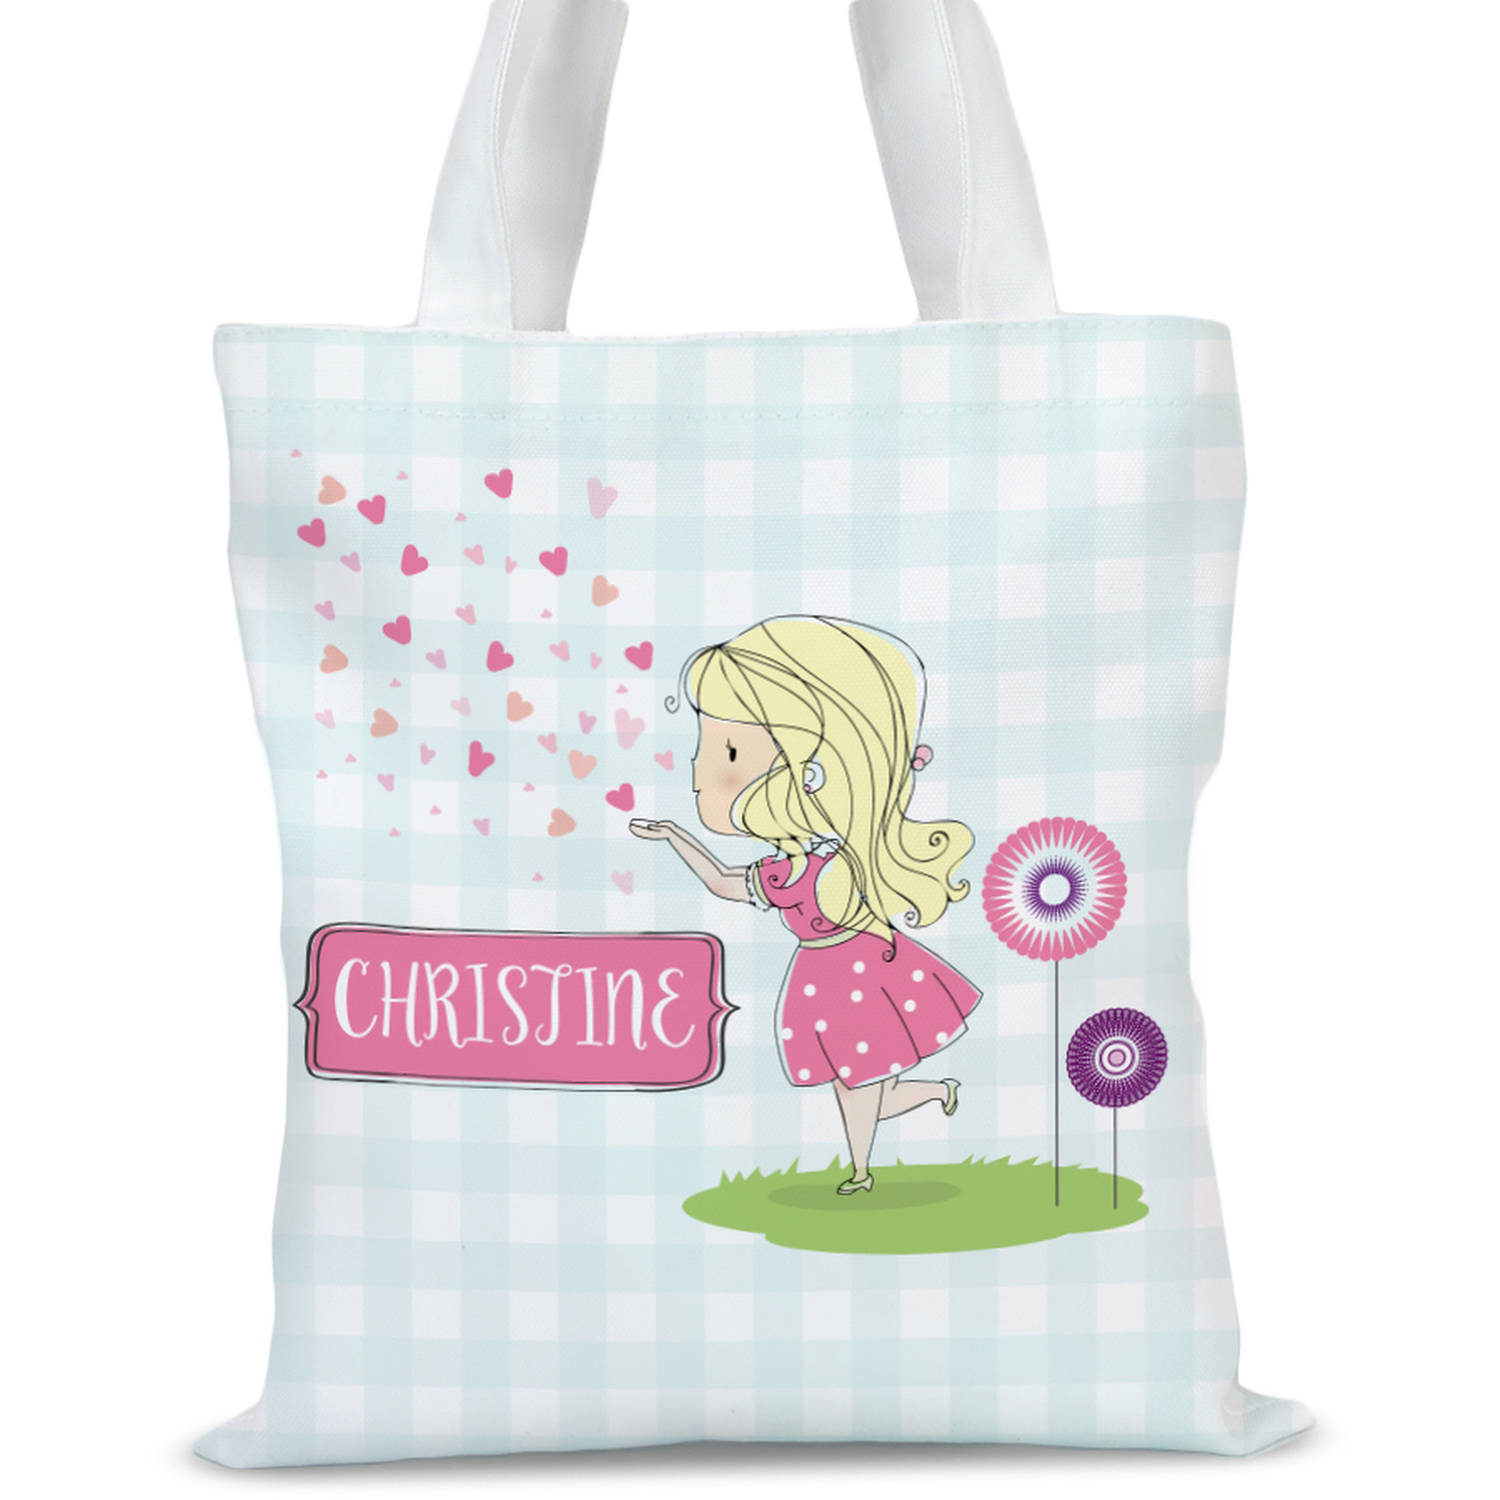 "Personalized Heart Kisses Kids Tote Bag, Sizes 11"" x 11.75"" and 15"" x 16.25"""